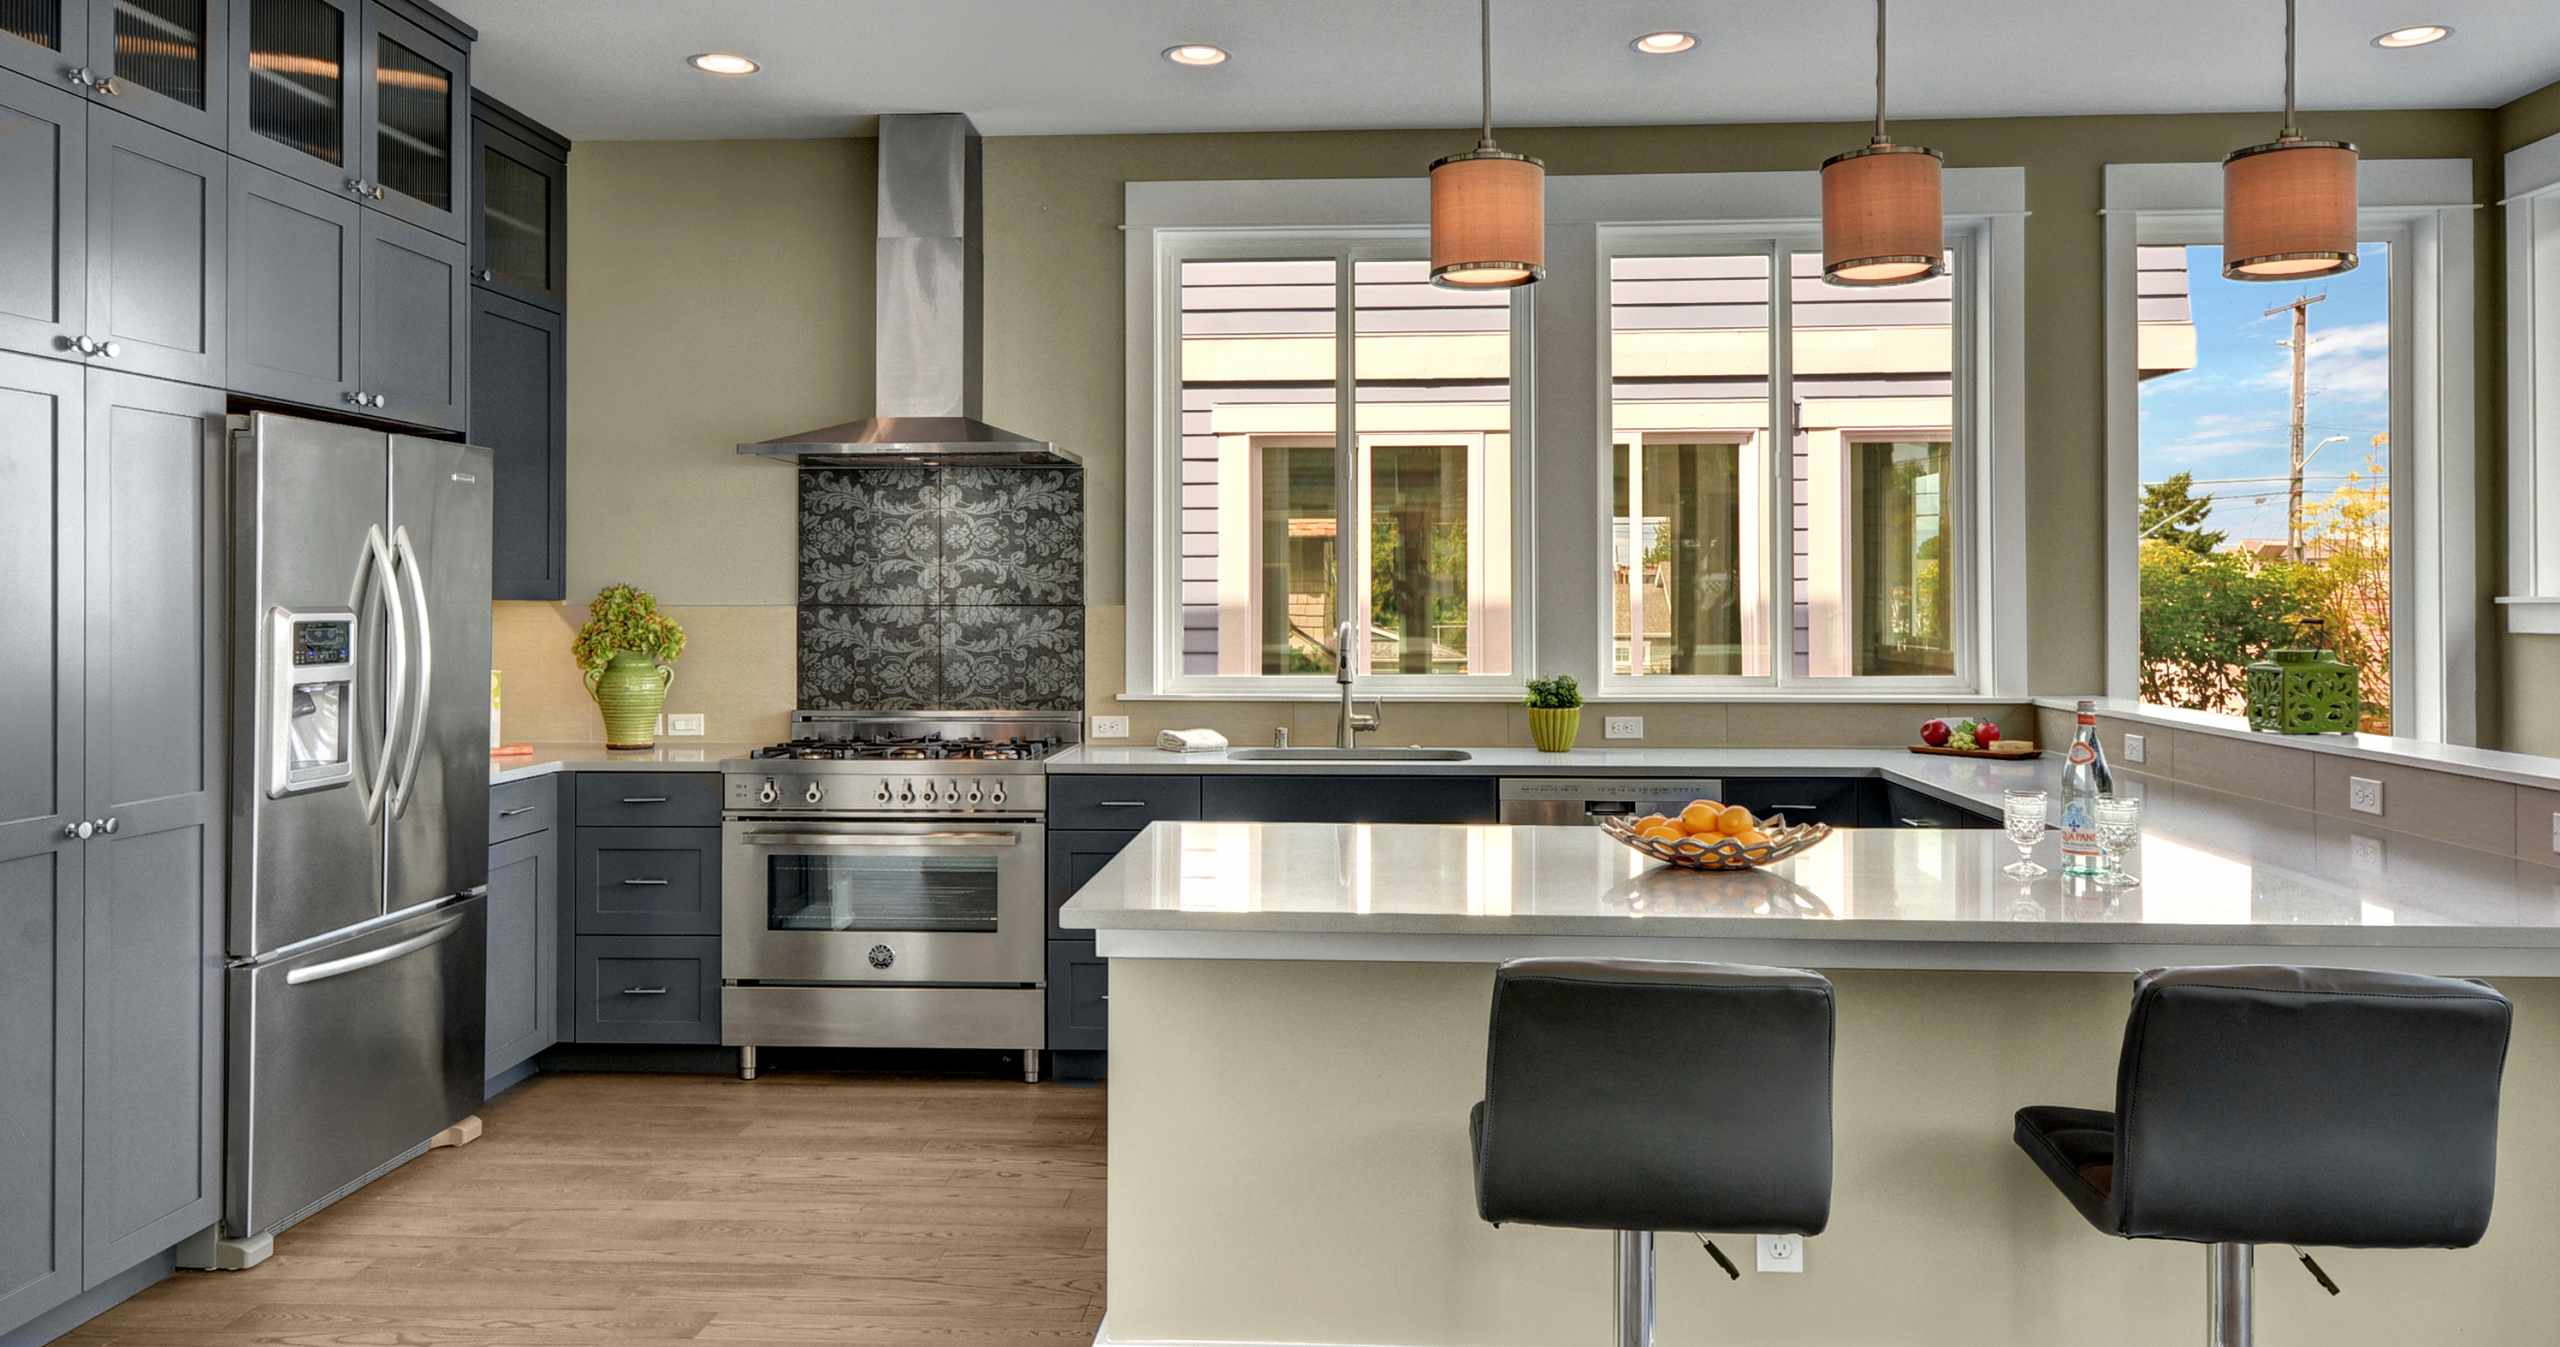 Modern Kitchen, U shape Kitchen, Stainless Steel Appliances, Modern Cabinets